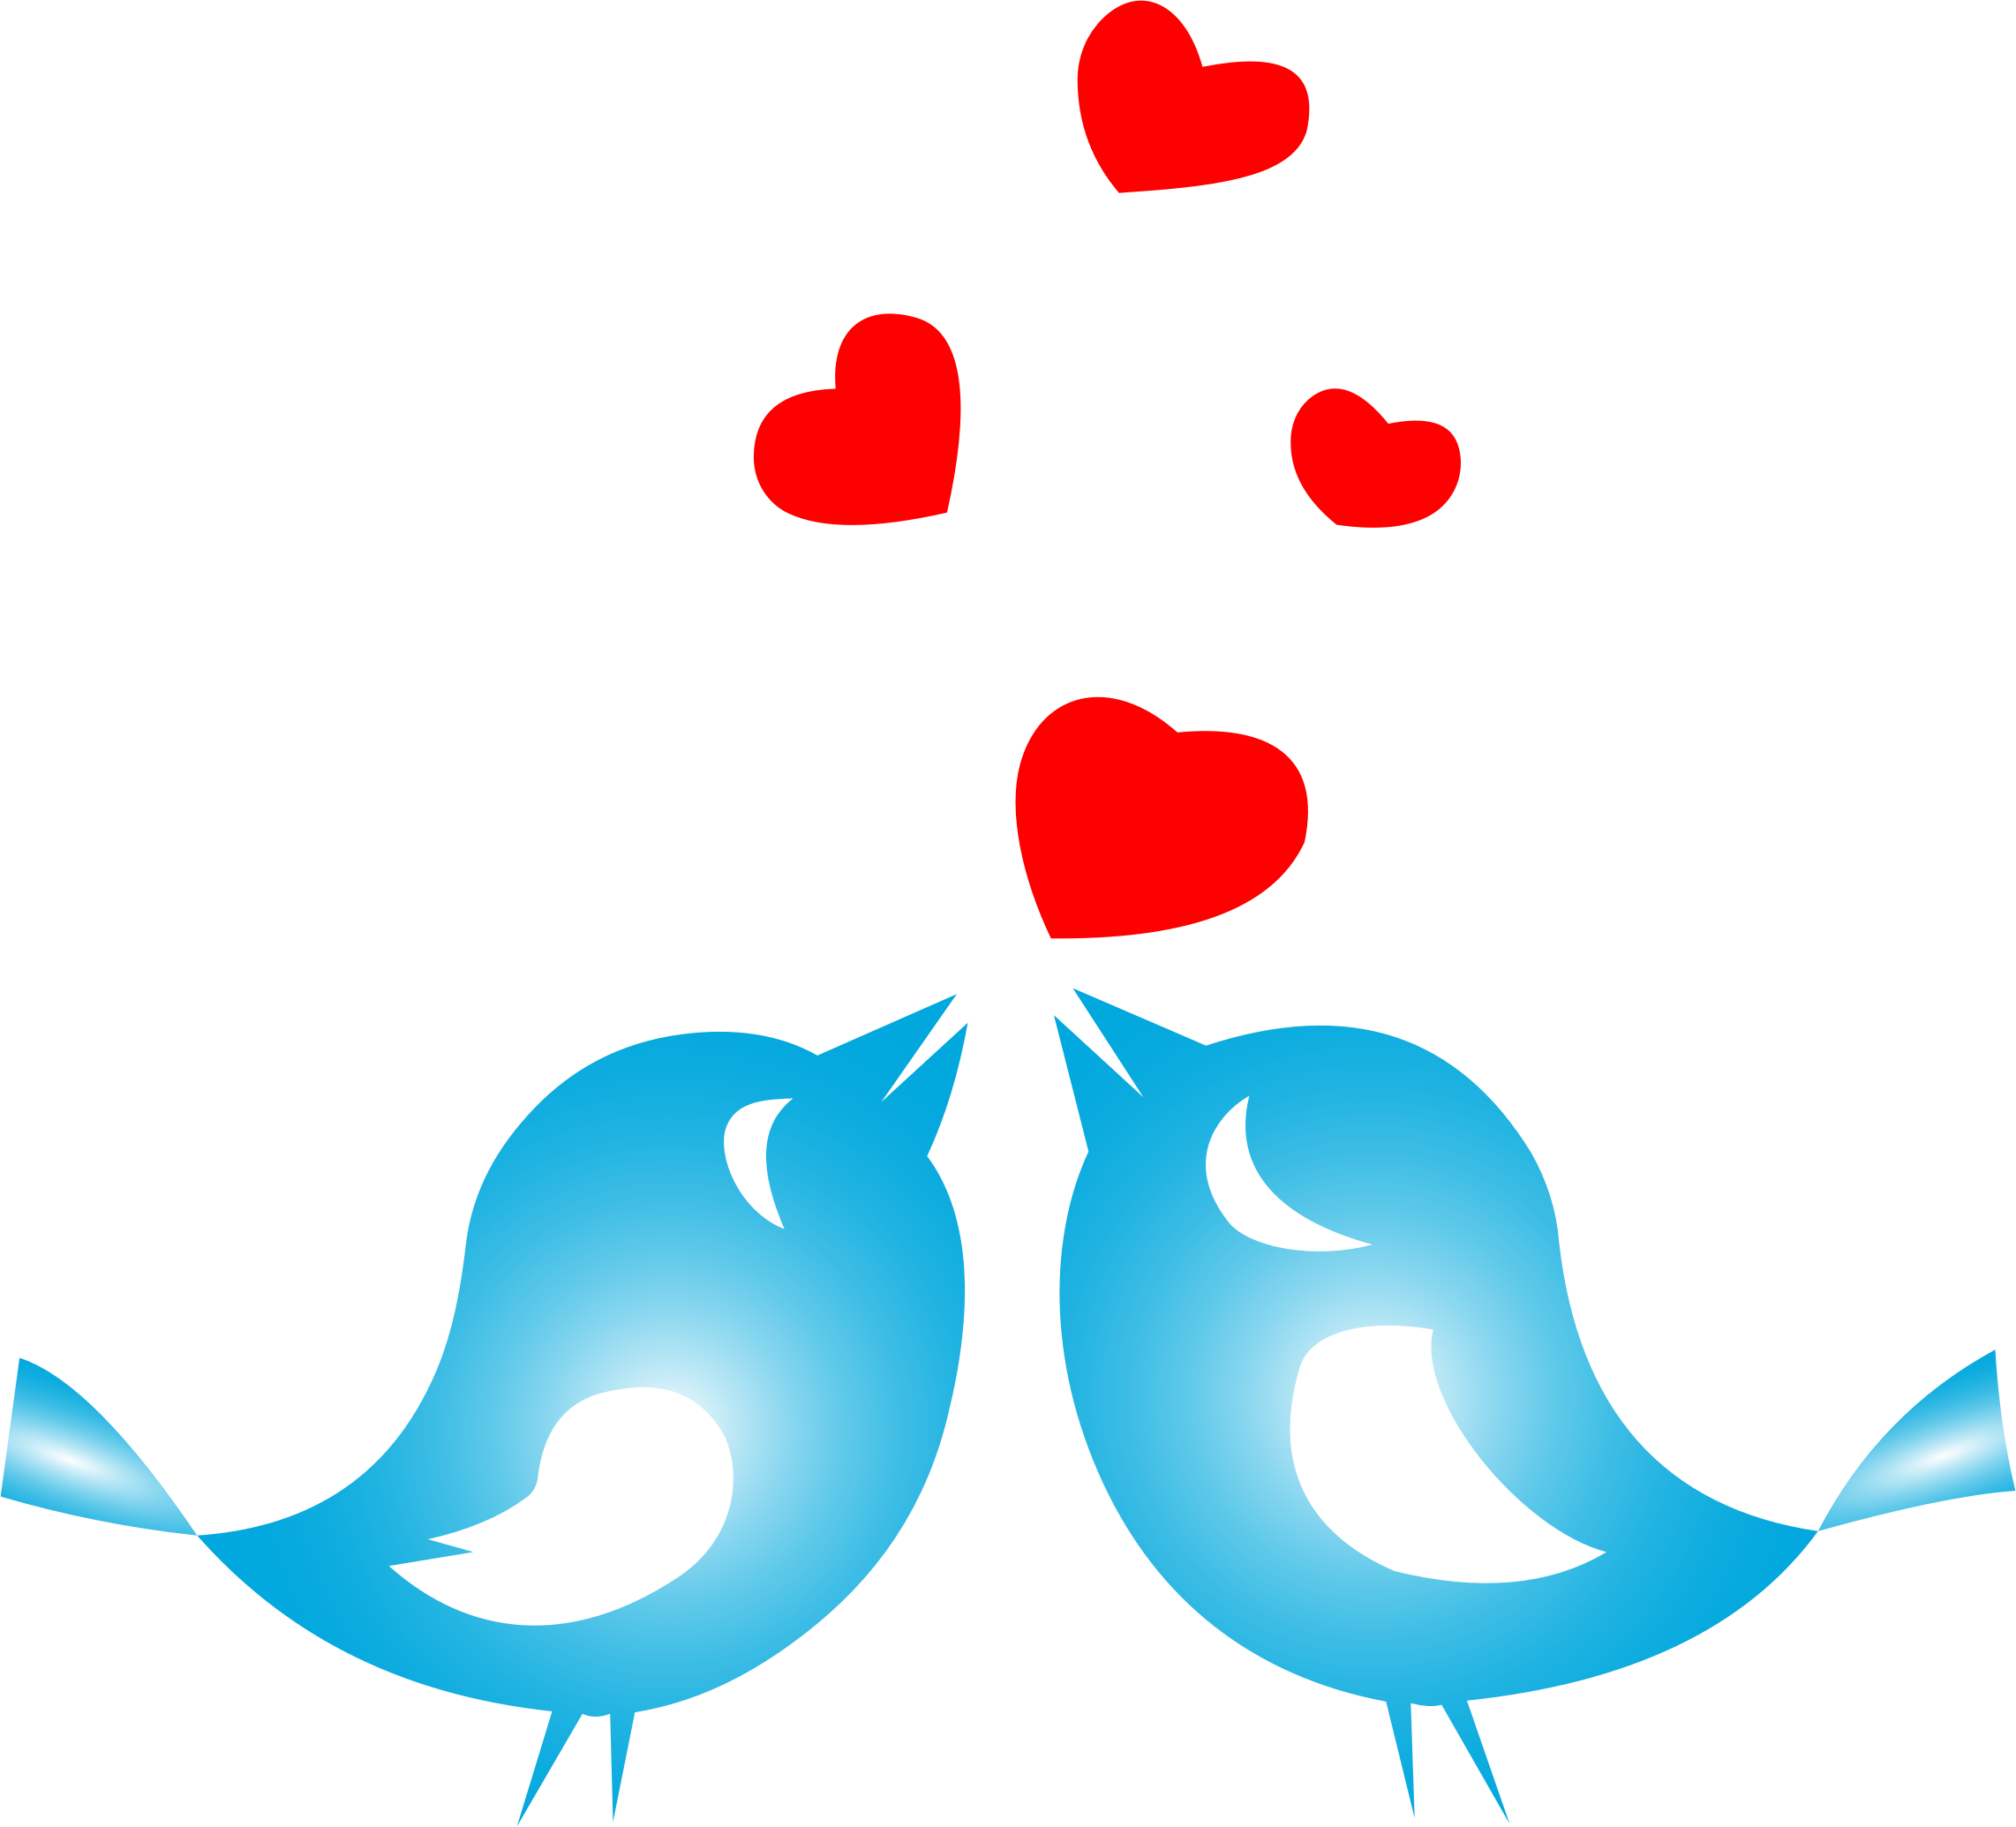 Colored Love Birds With Hearts by GDJ